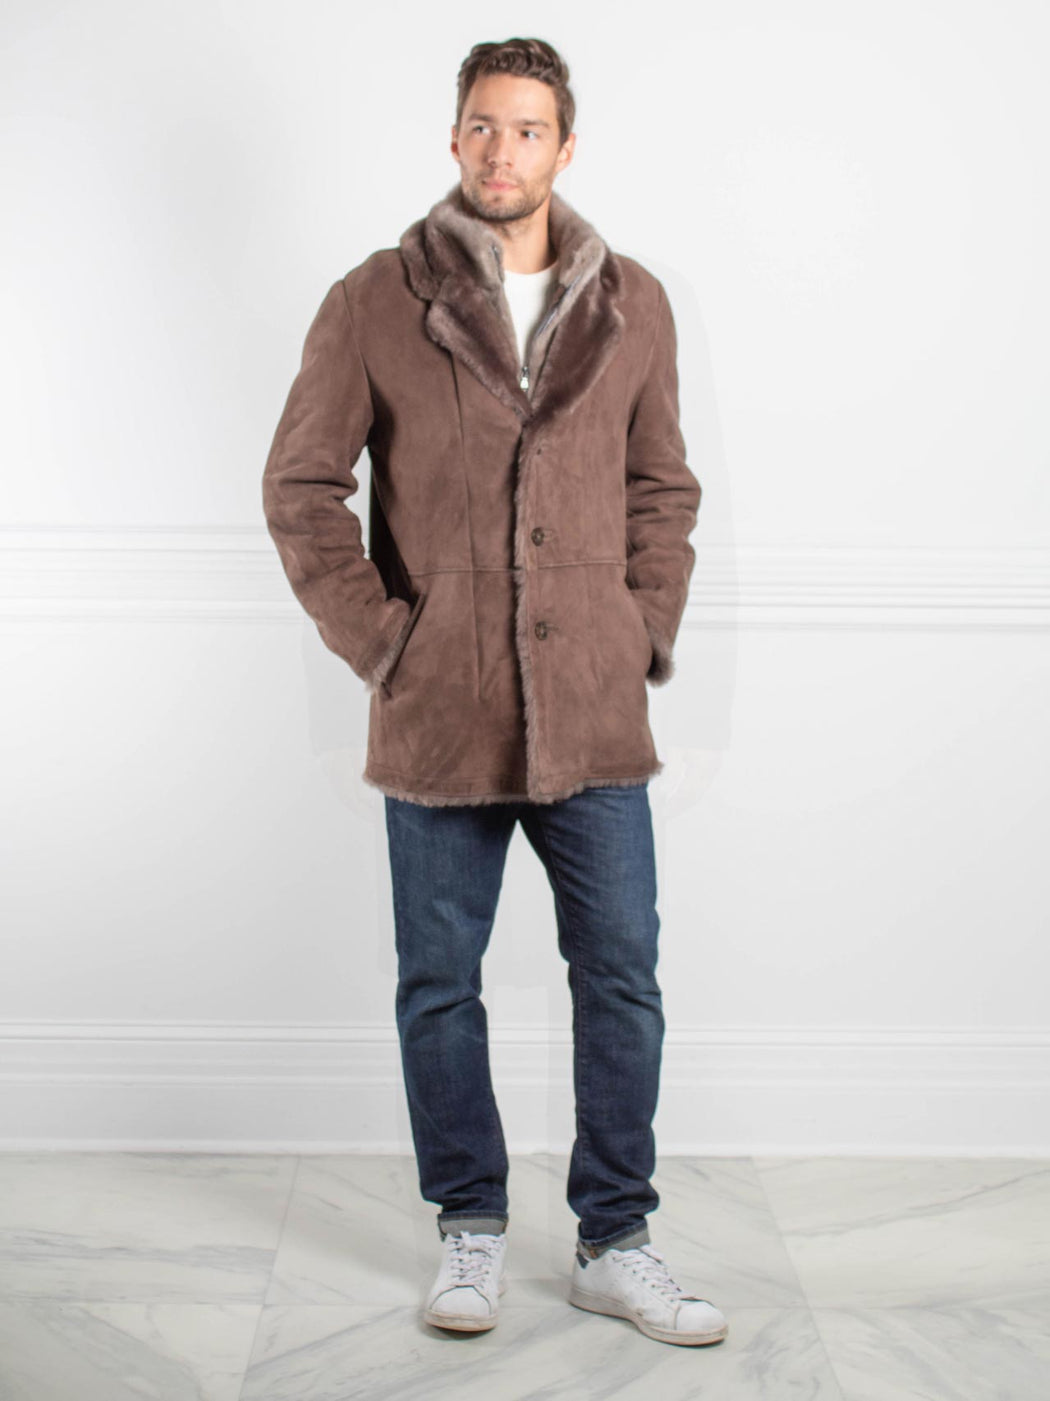 Mens Fur Lined Coat - Pologeorgis